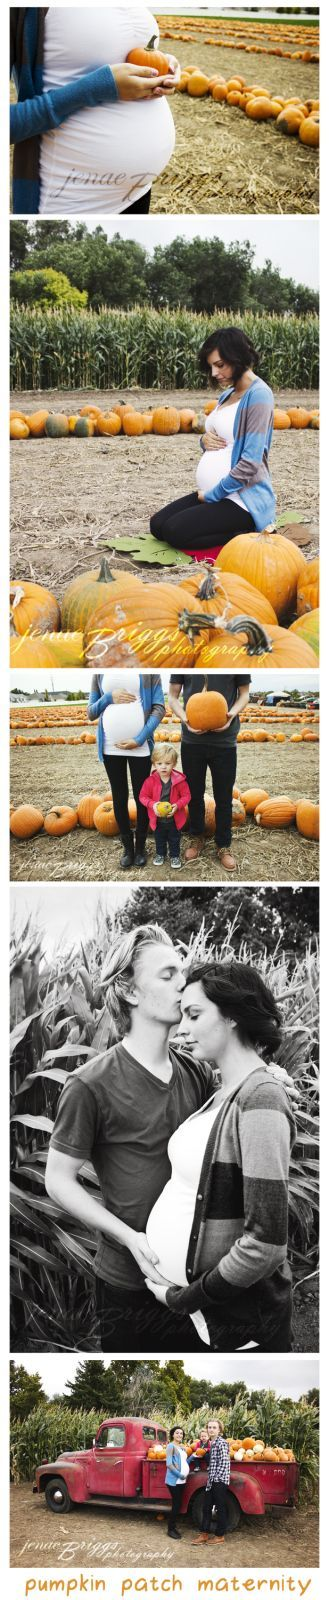 maternity pumpkin patch corn maze autumn session photography riverton utah